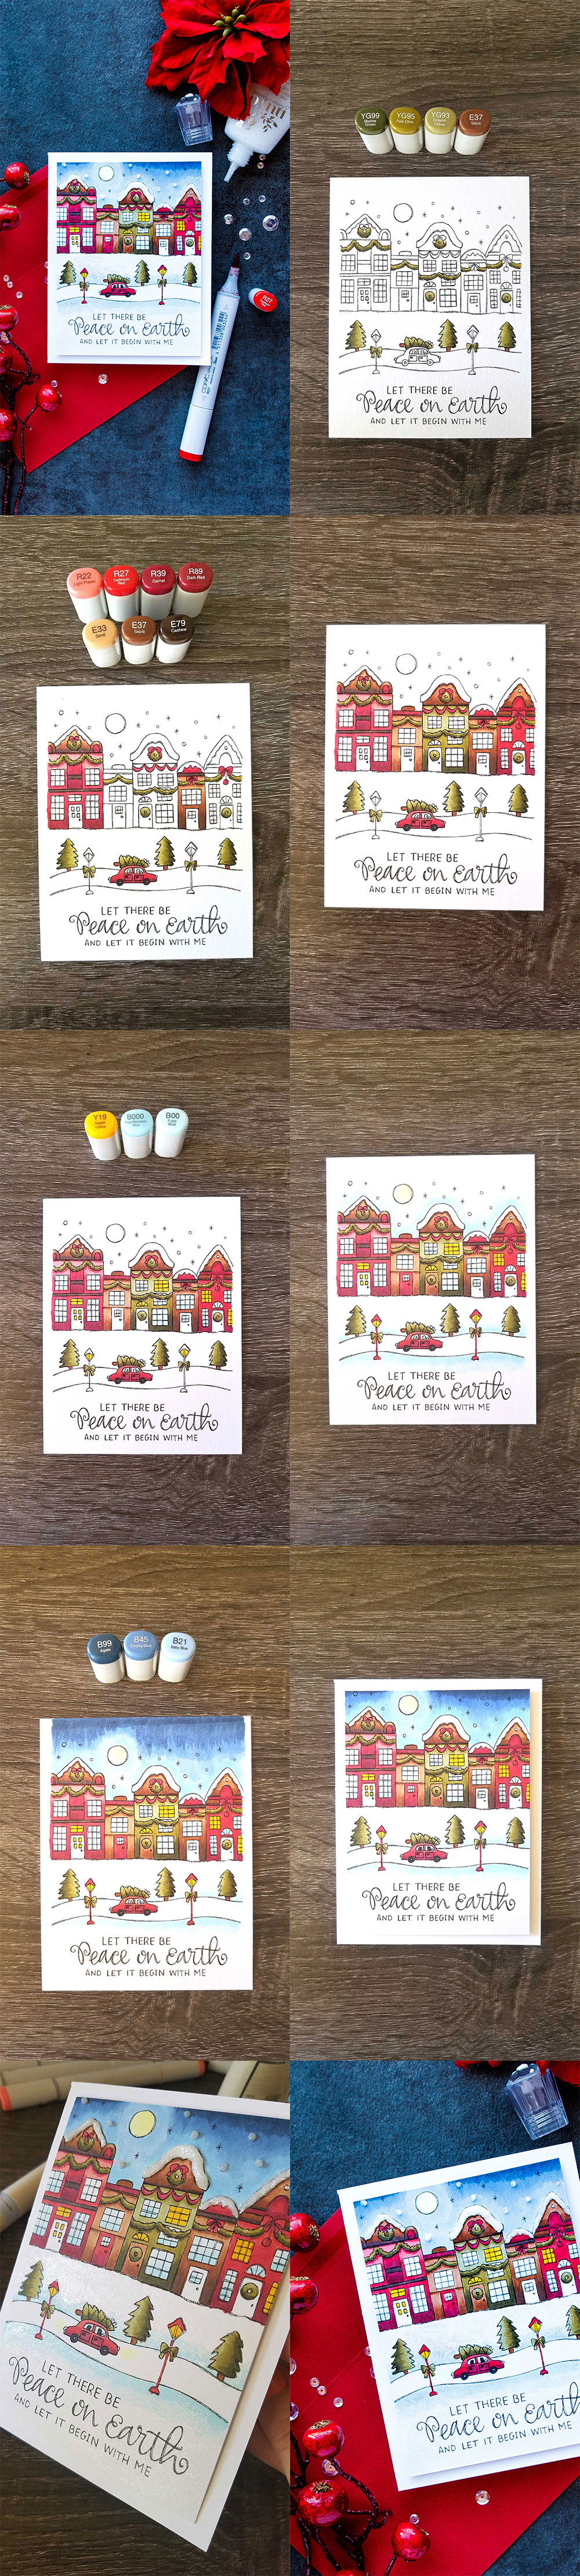 Simon Says Stamp | Copic Colored Suzy's Watercolor Print - Peace on Earth Card. Project by Yana Smakula #coloring #christmascard #simonsaysstamp